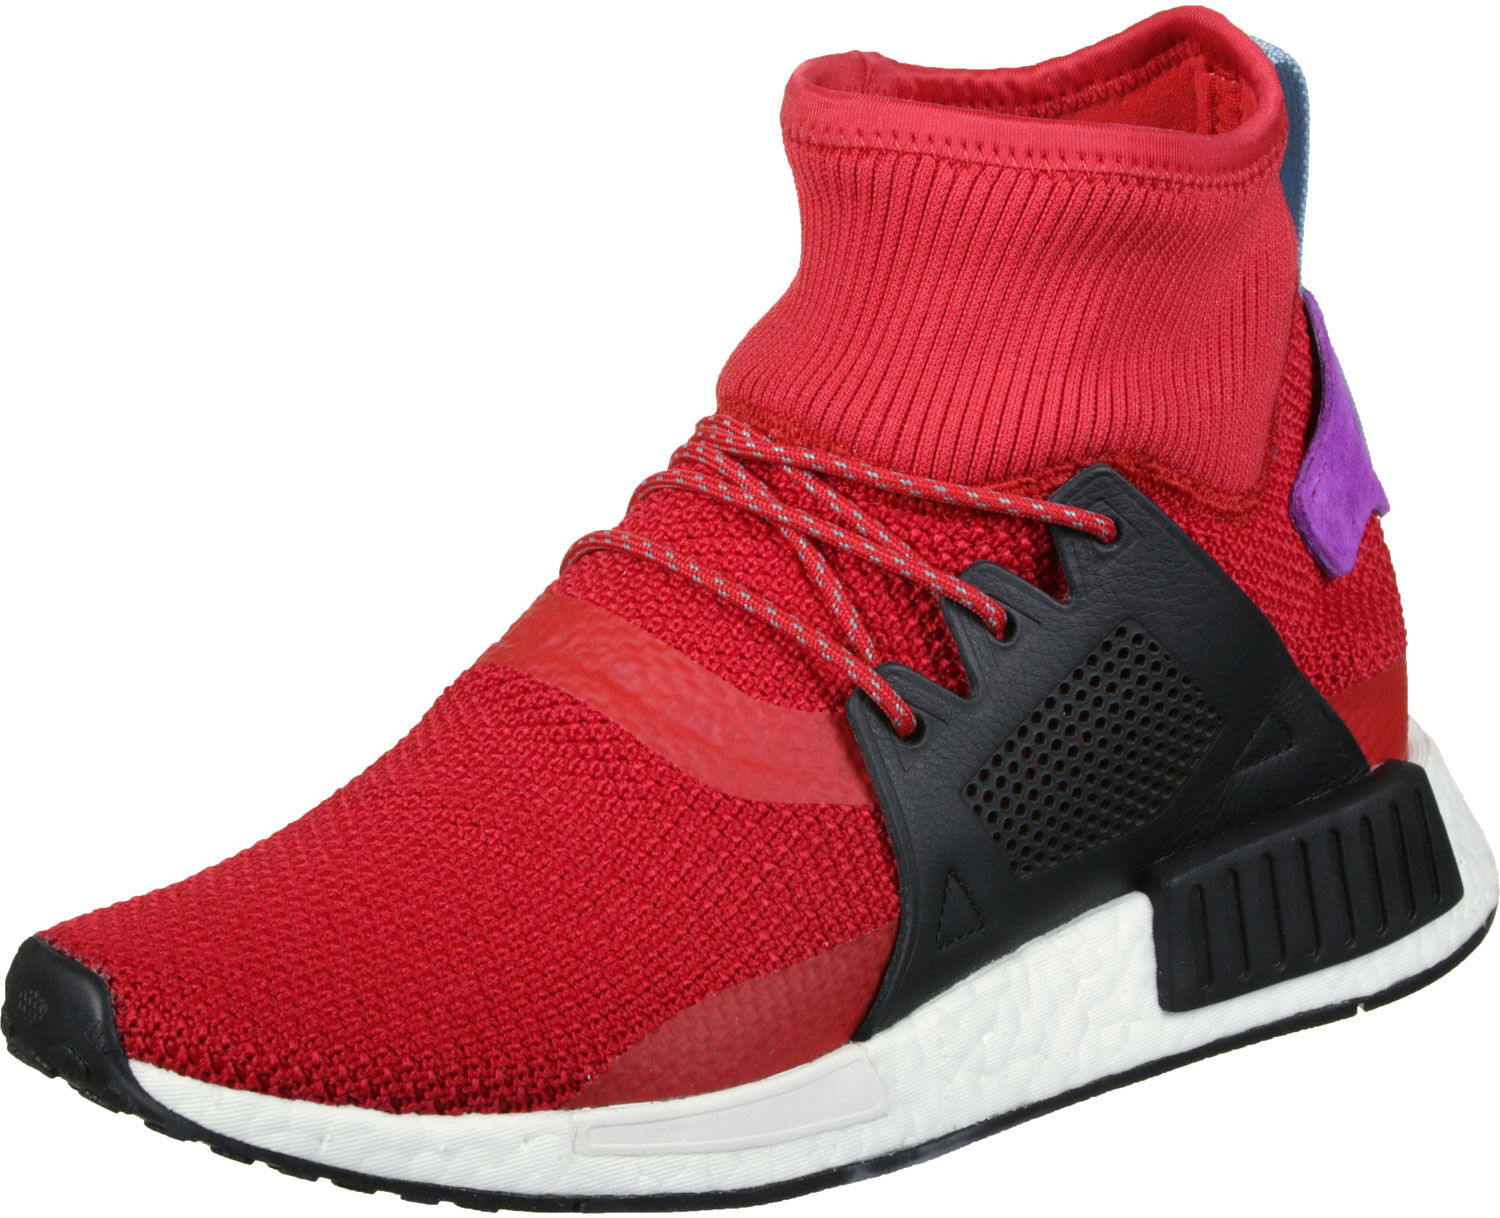 adidas NMD XR1 Winter - Sneakers High